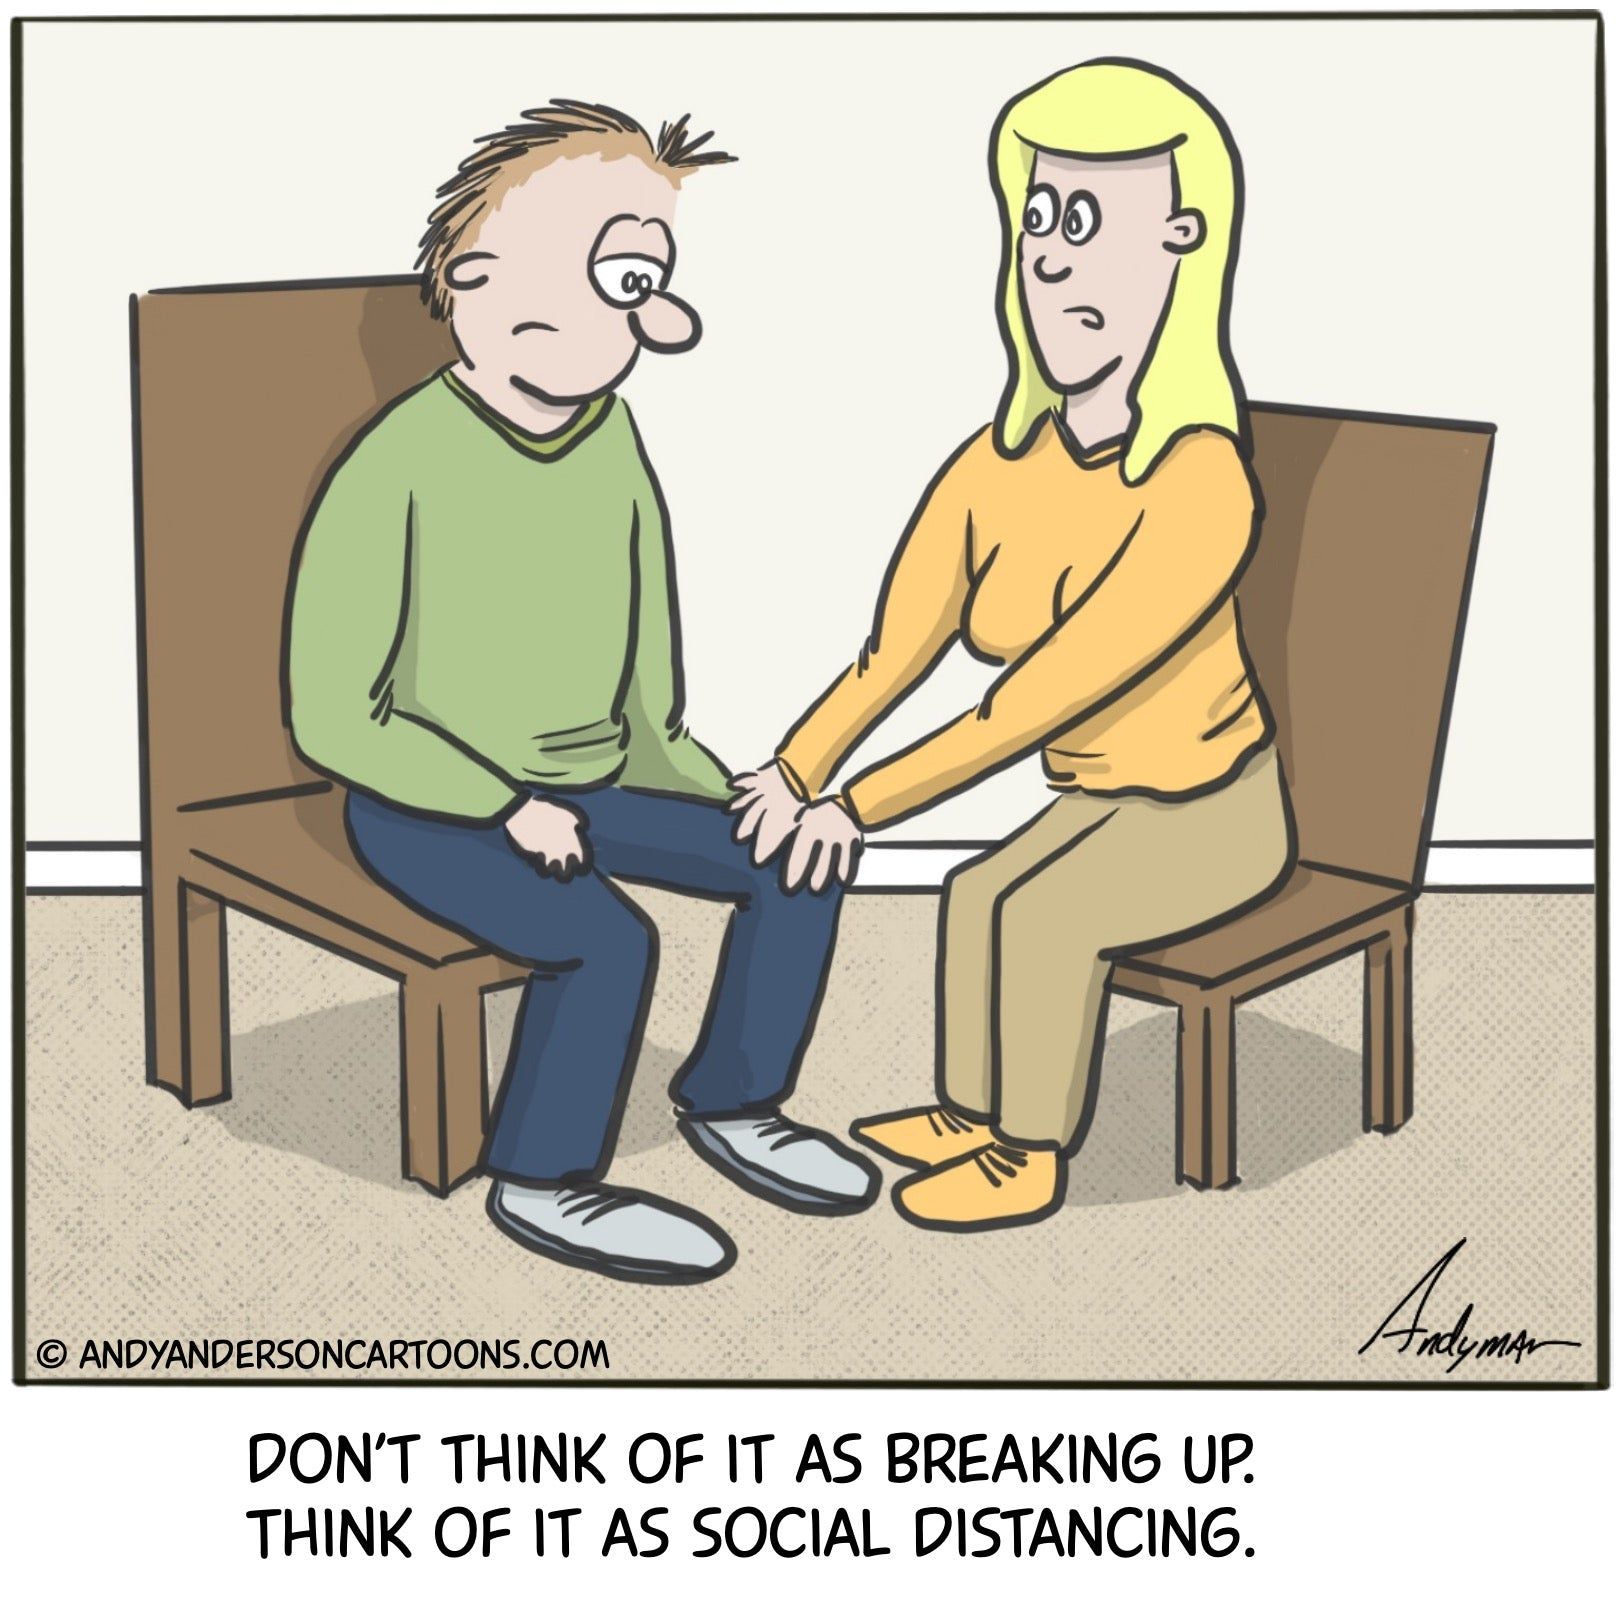 Cartoon about breaking up during the COVID19 crisis